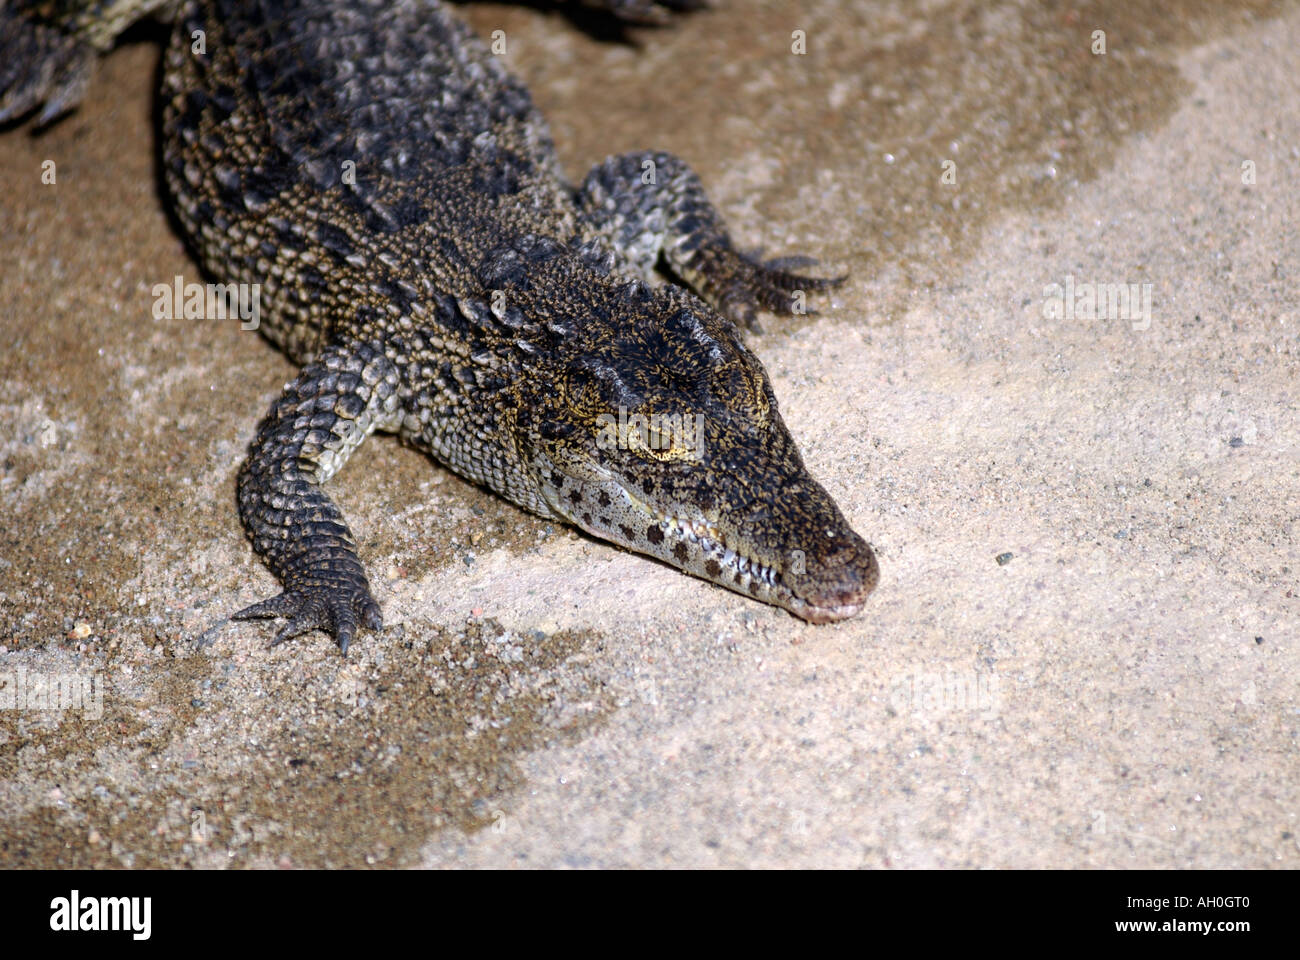 Cuban crocodile Crocodylus rhombifer.  Eskilstuna Zoo Sweden Stock Photo